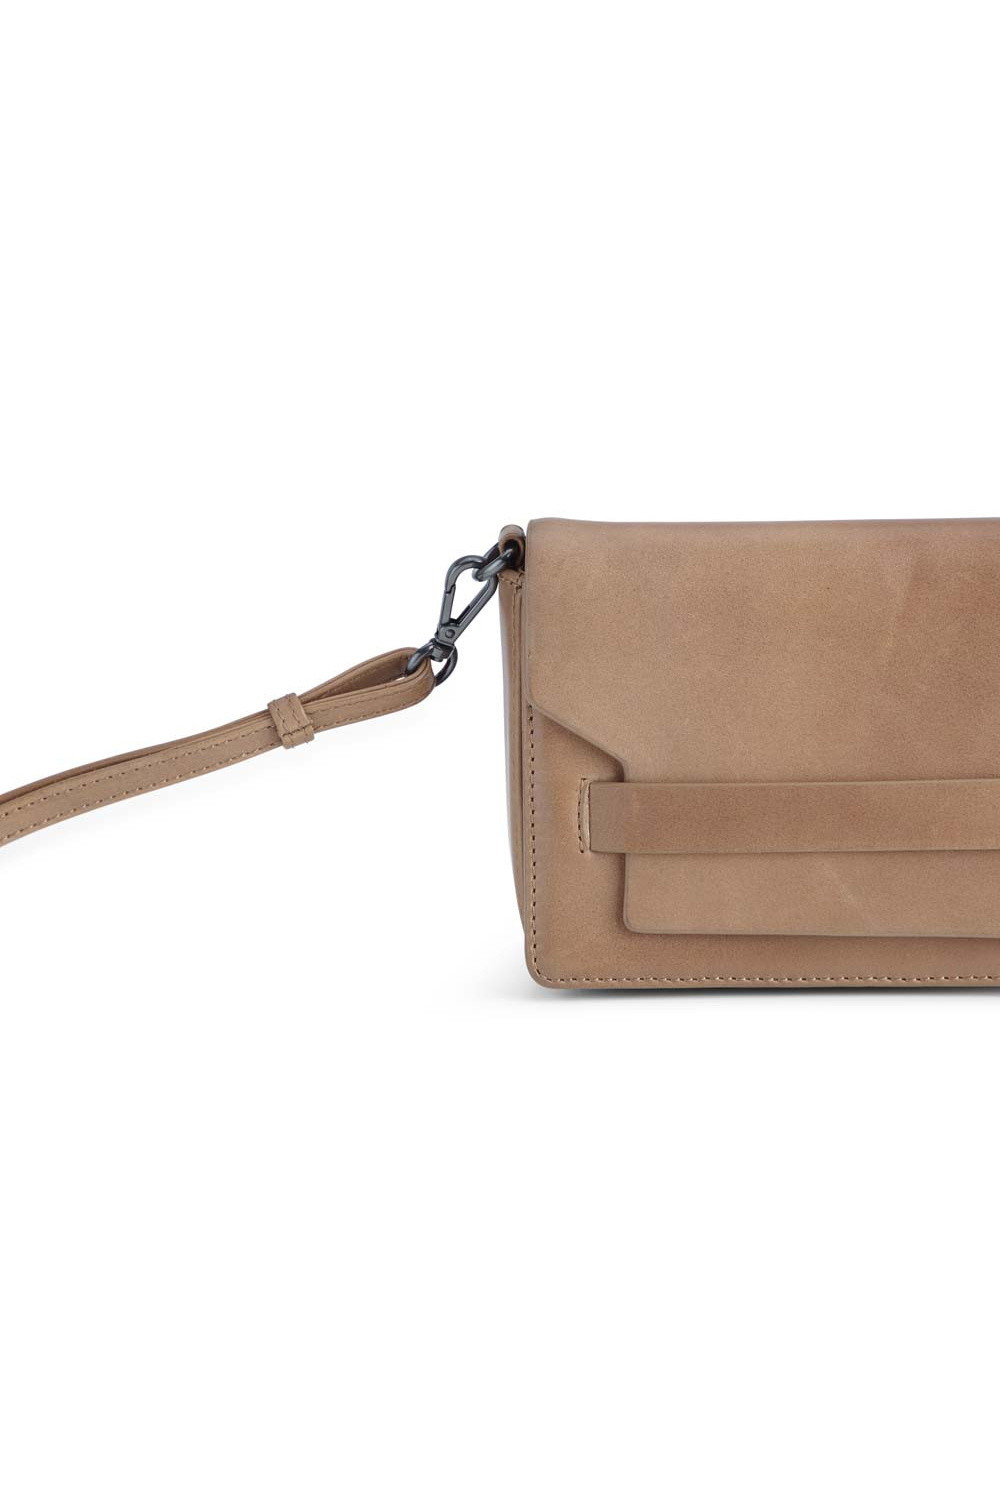 Vanya Crossbody Bag Antique - Caramel-5